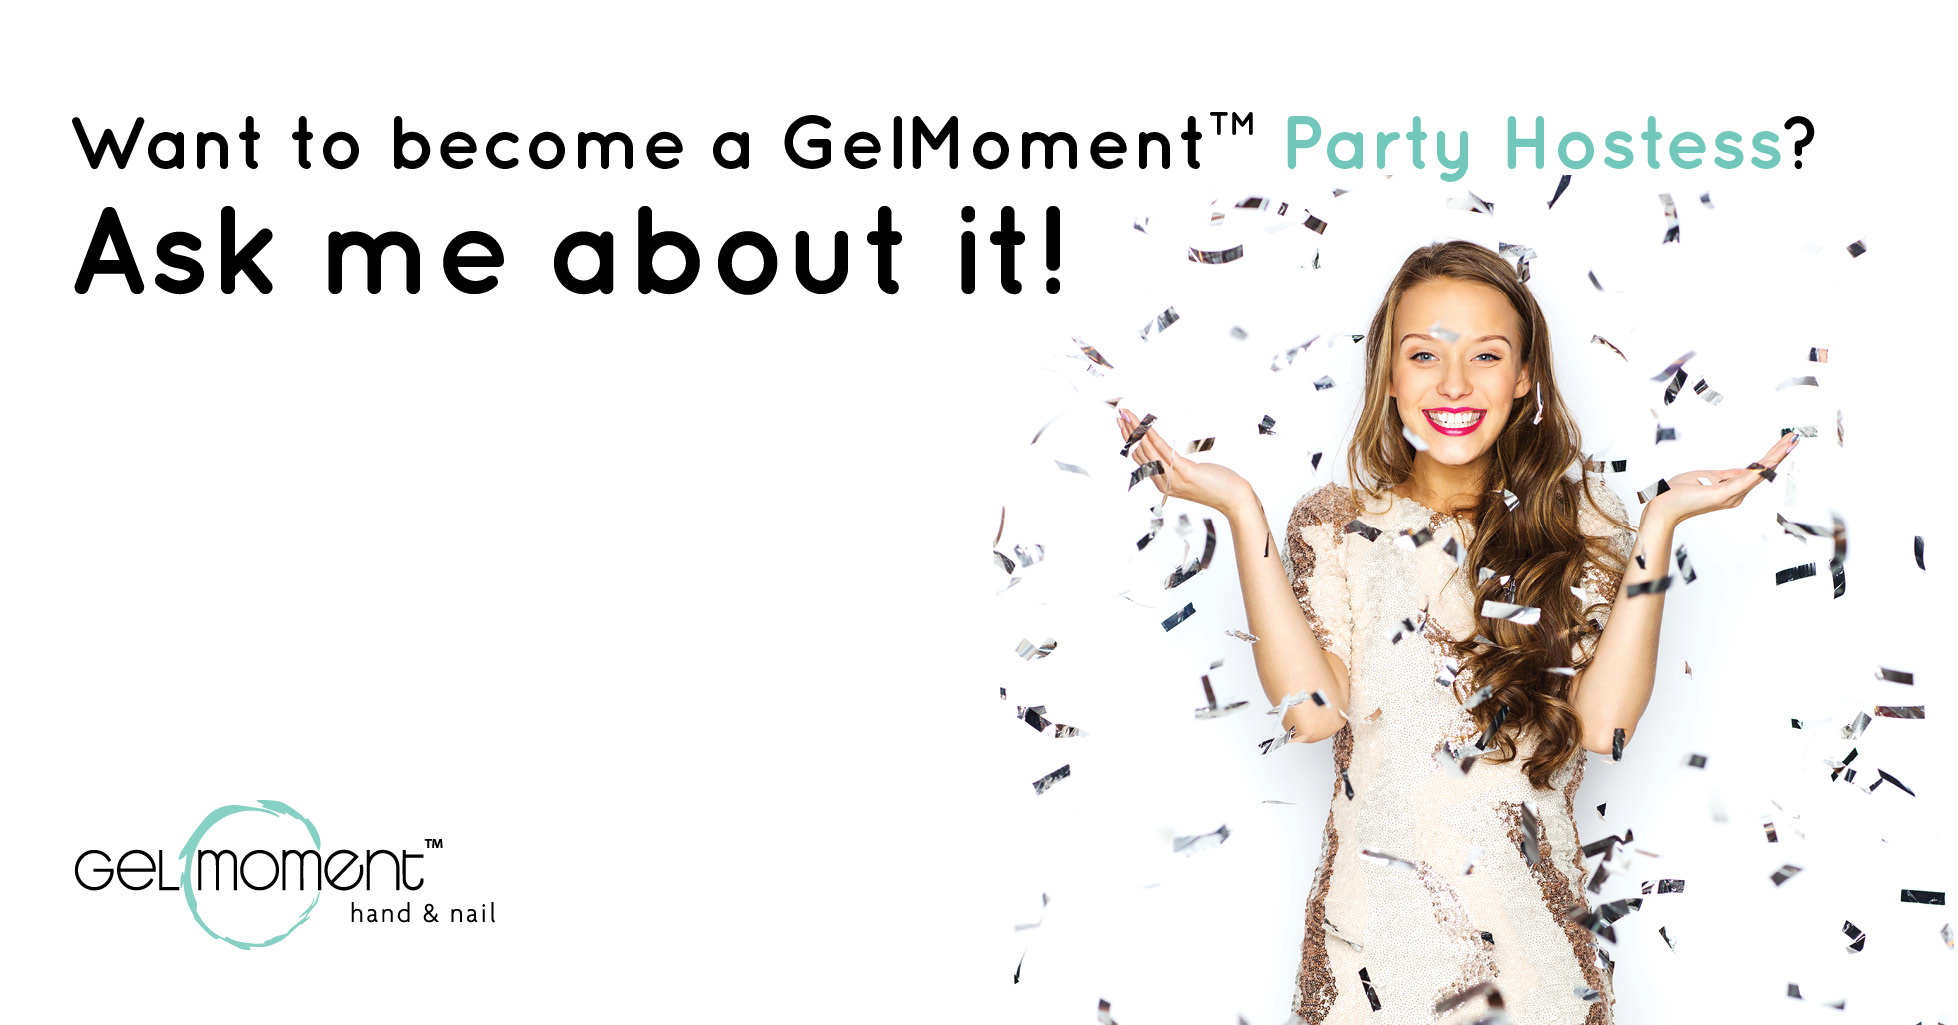 GelMoment Party